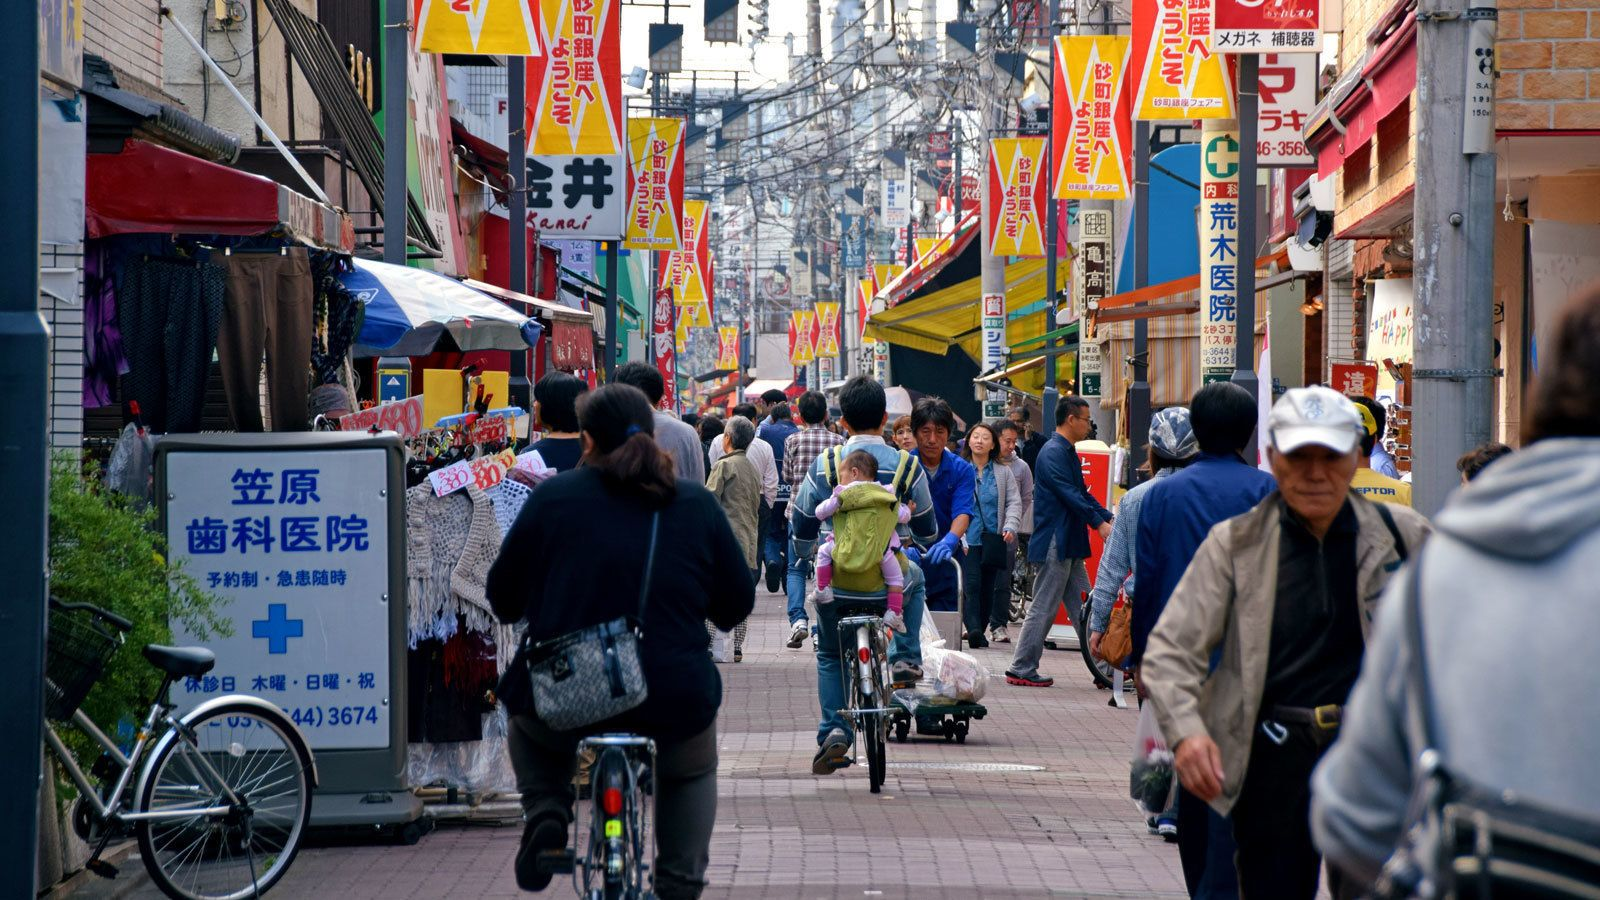 pedestrians and bikers on a crowded street in Japan